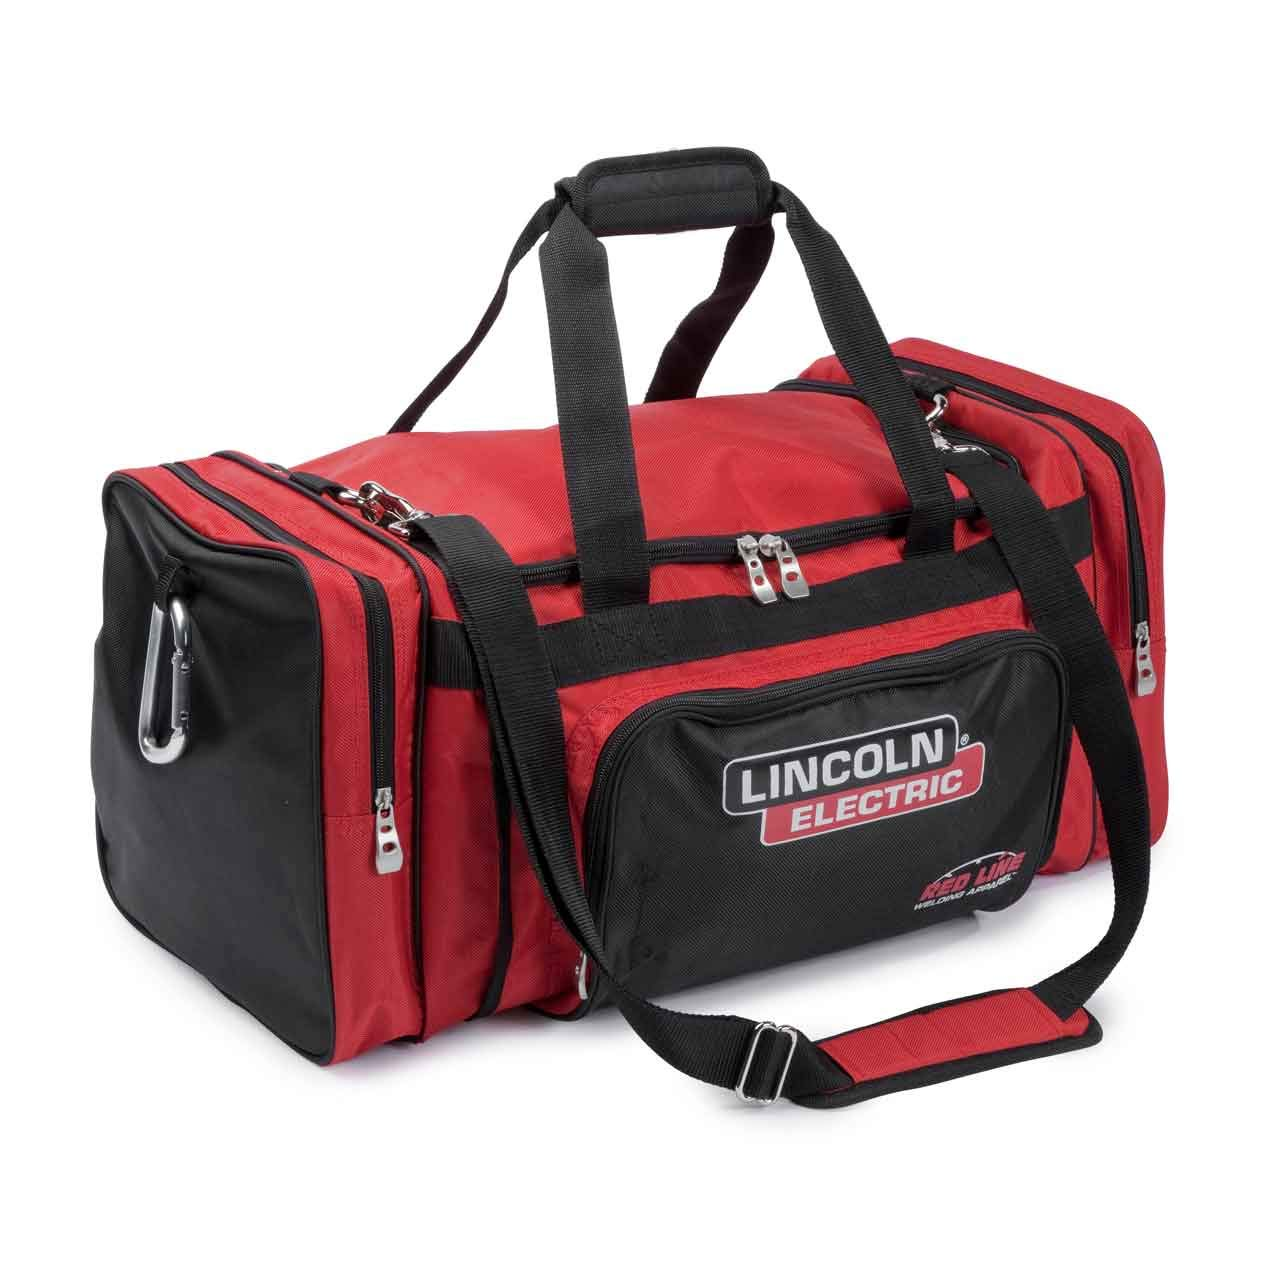 Lincoln Electric Industrial Duffle Bag | Military Grade Denier Fabric | 24'' x 12'' x 12'' | 50+ LB Capacity | K3096-1 by Lincoln Electric